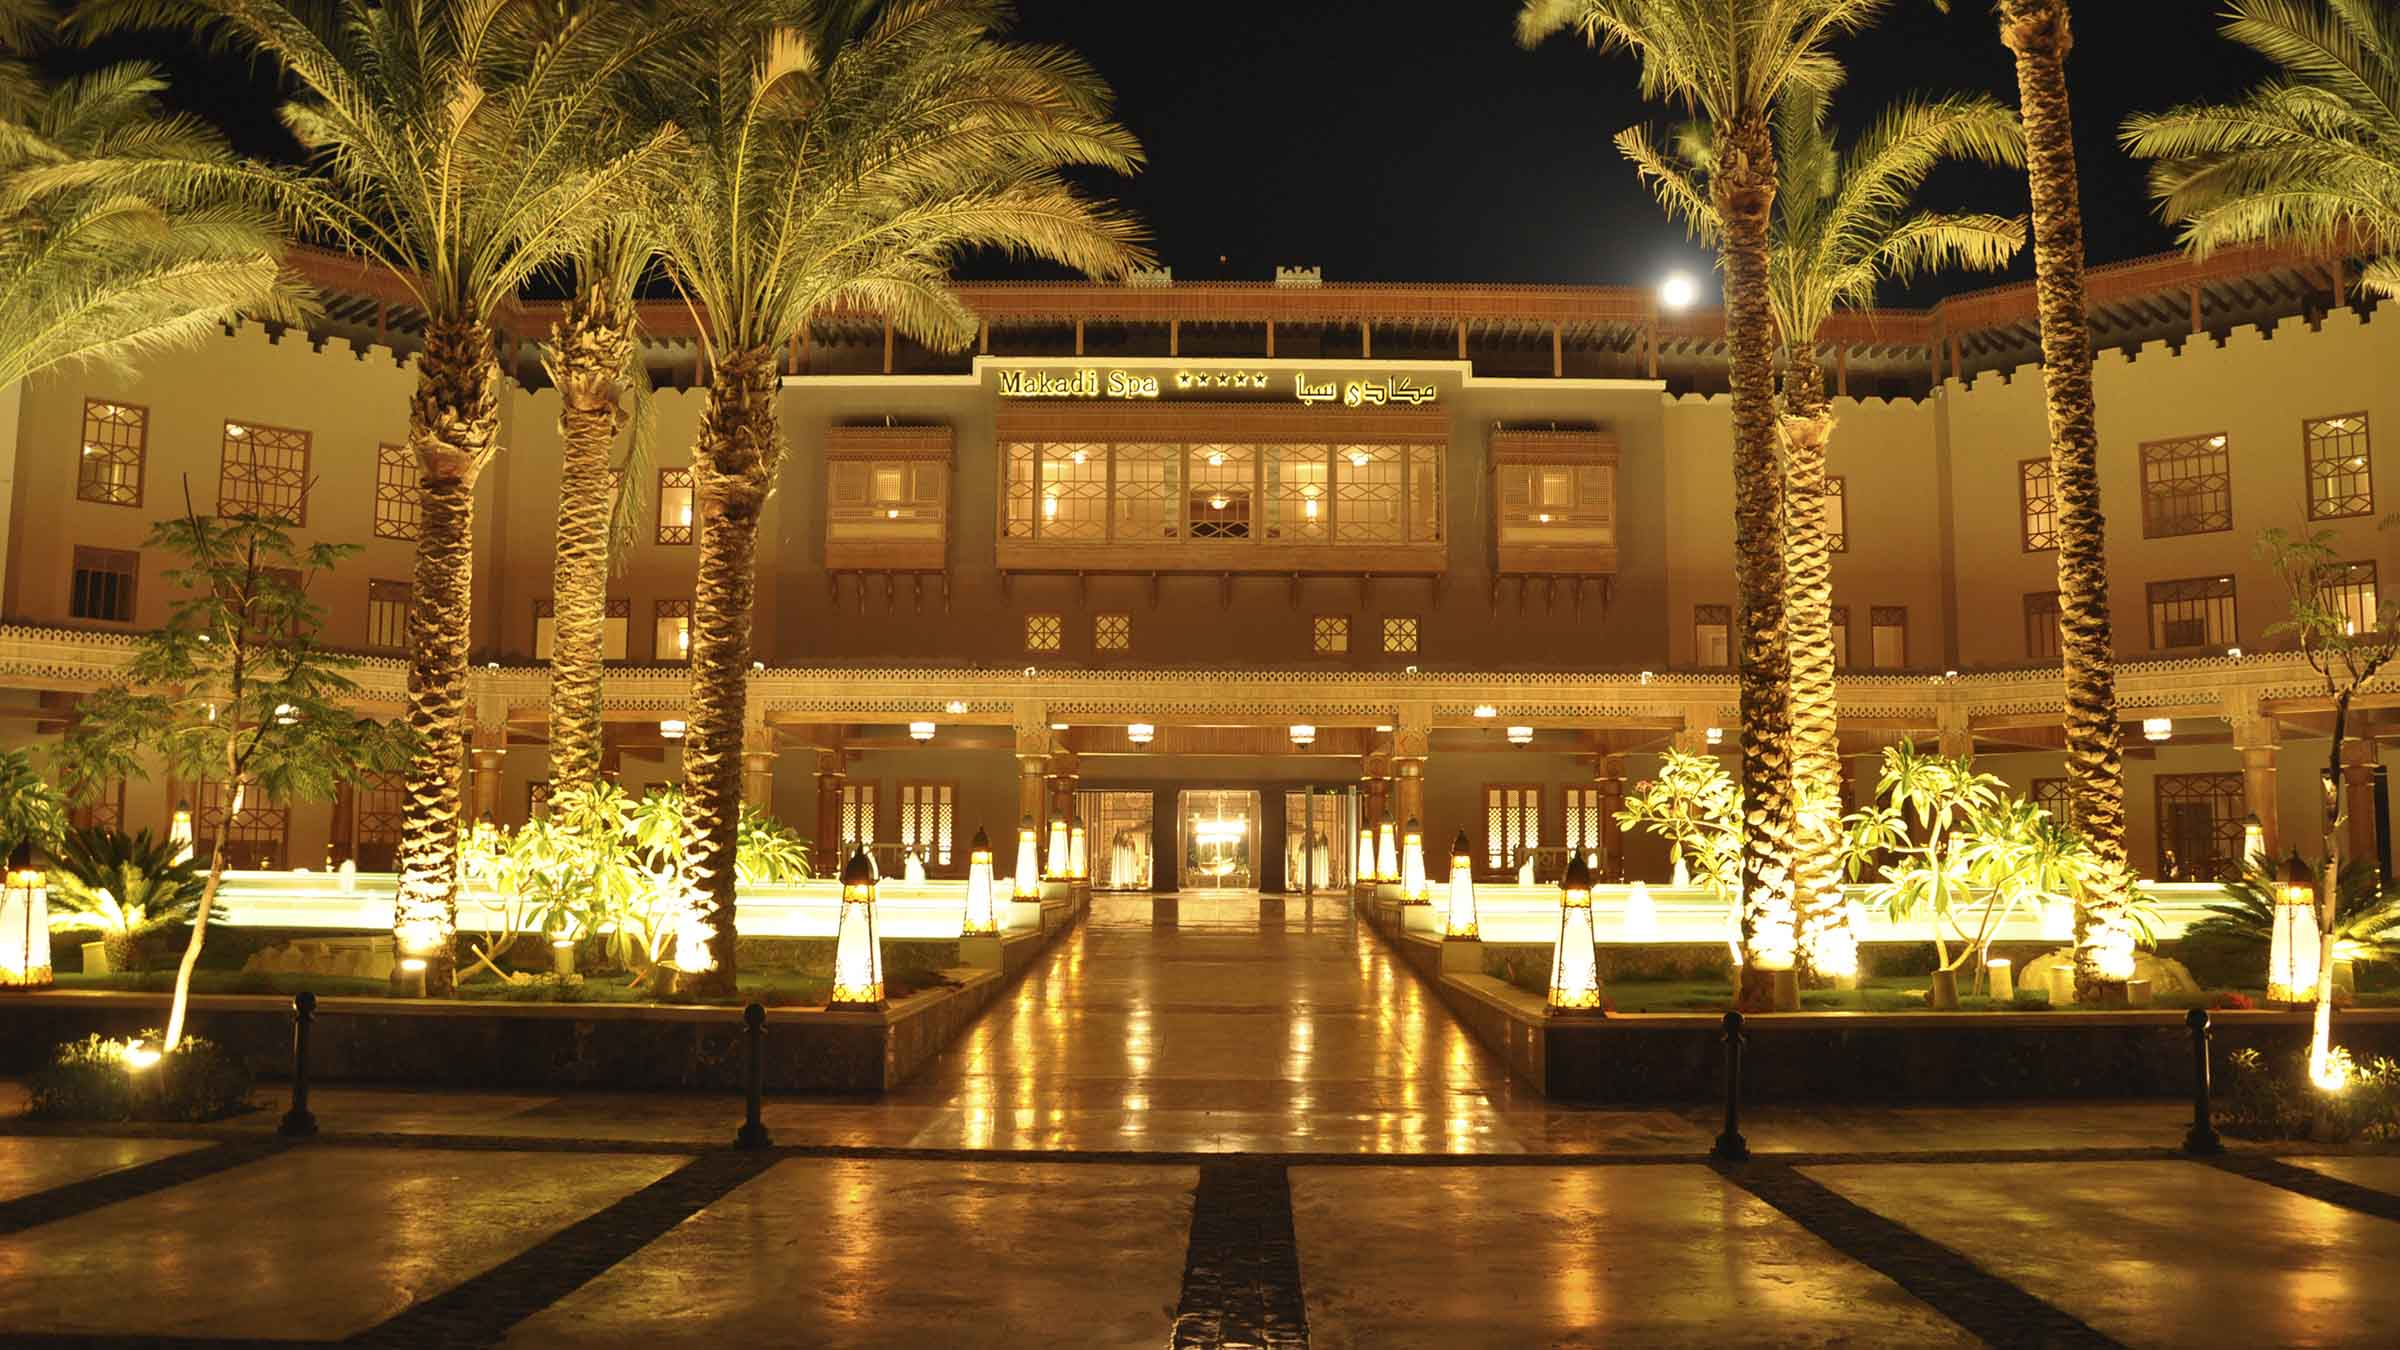 The Makadi Spa Hotel